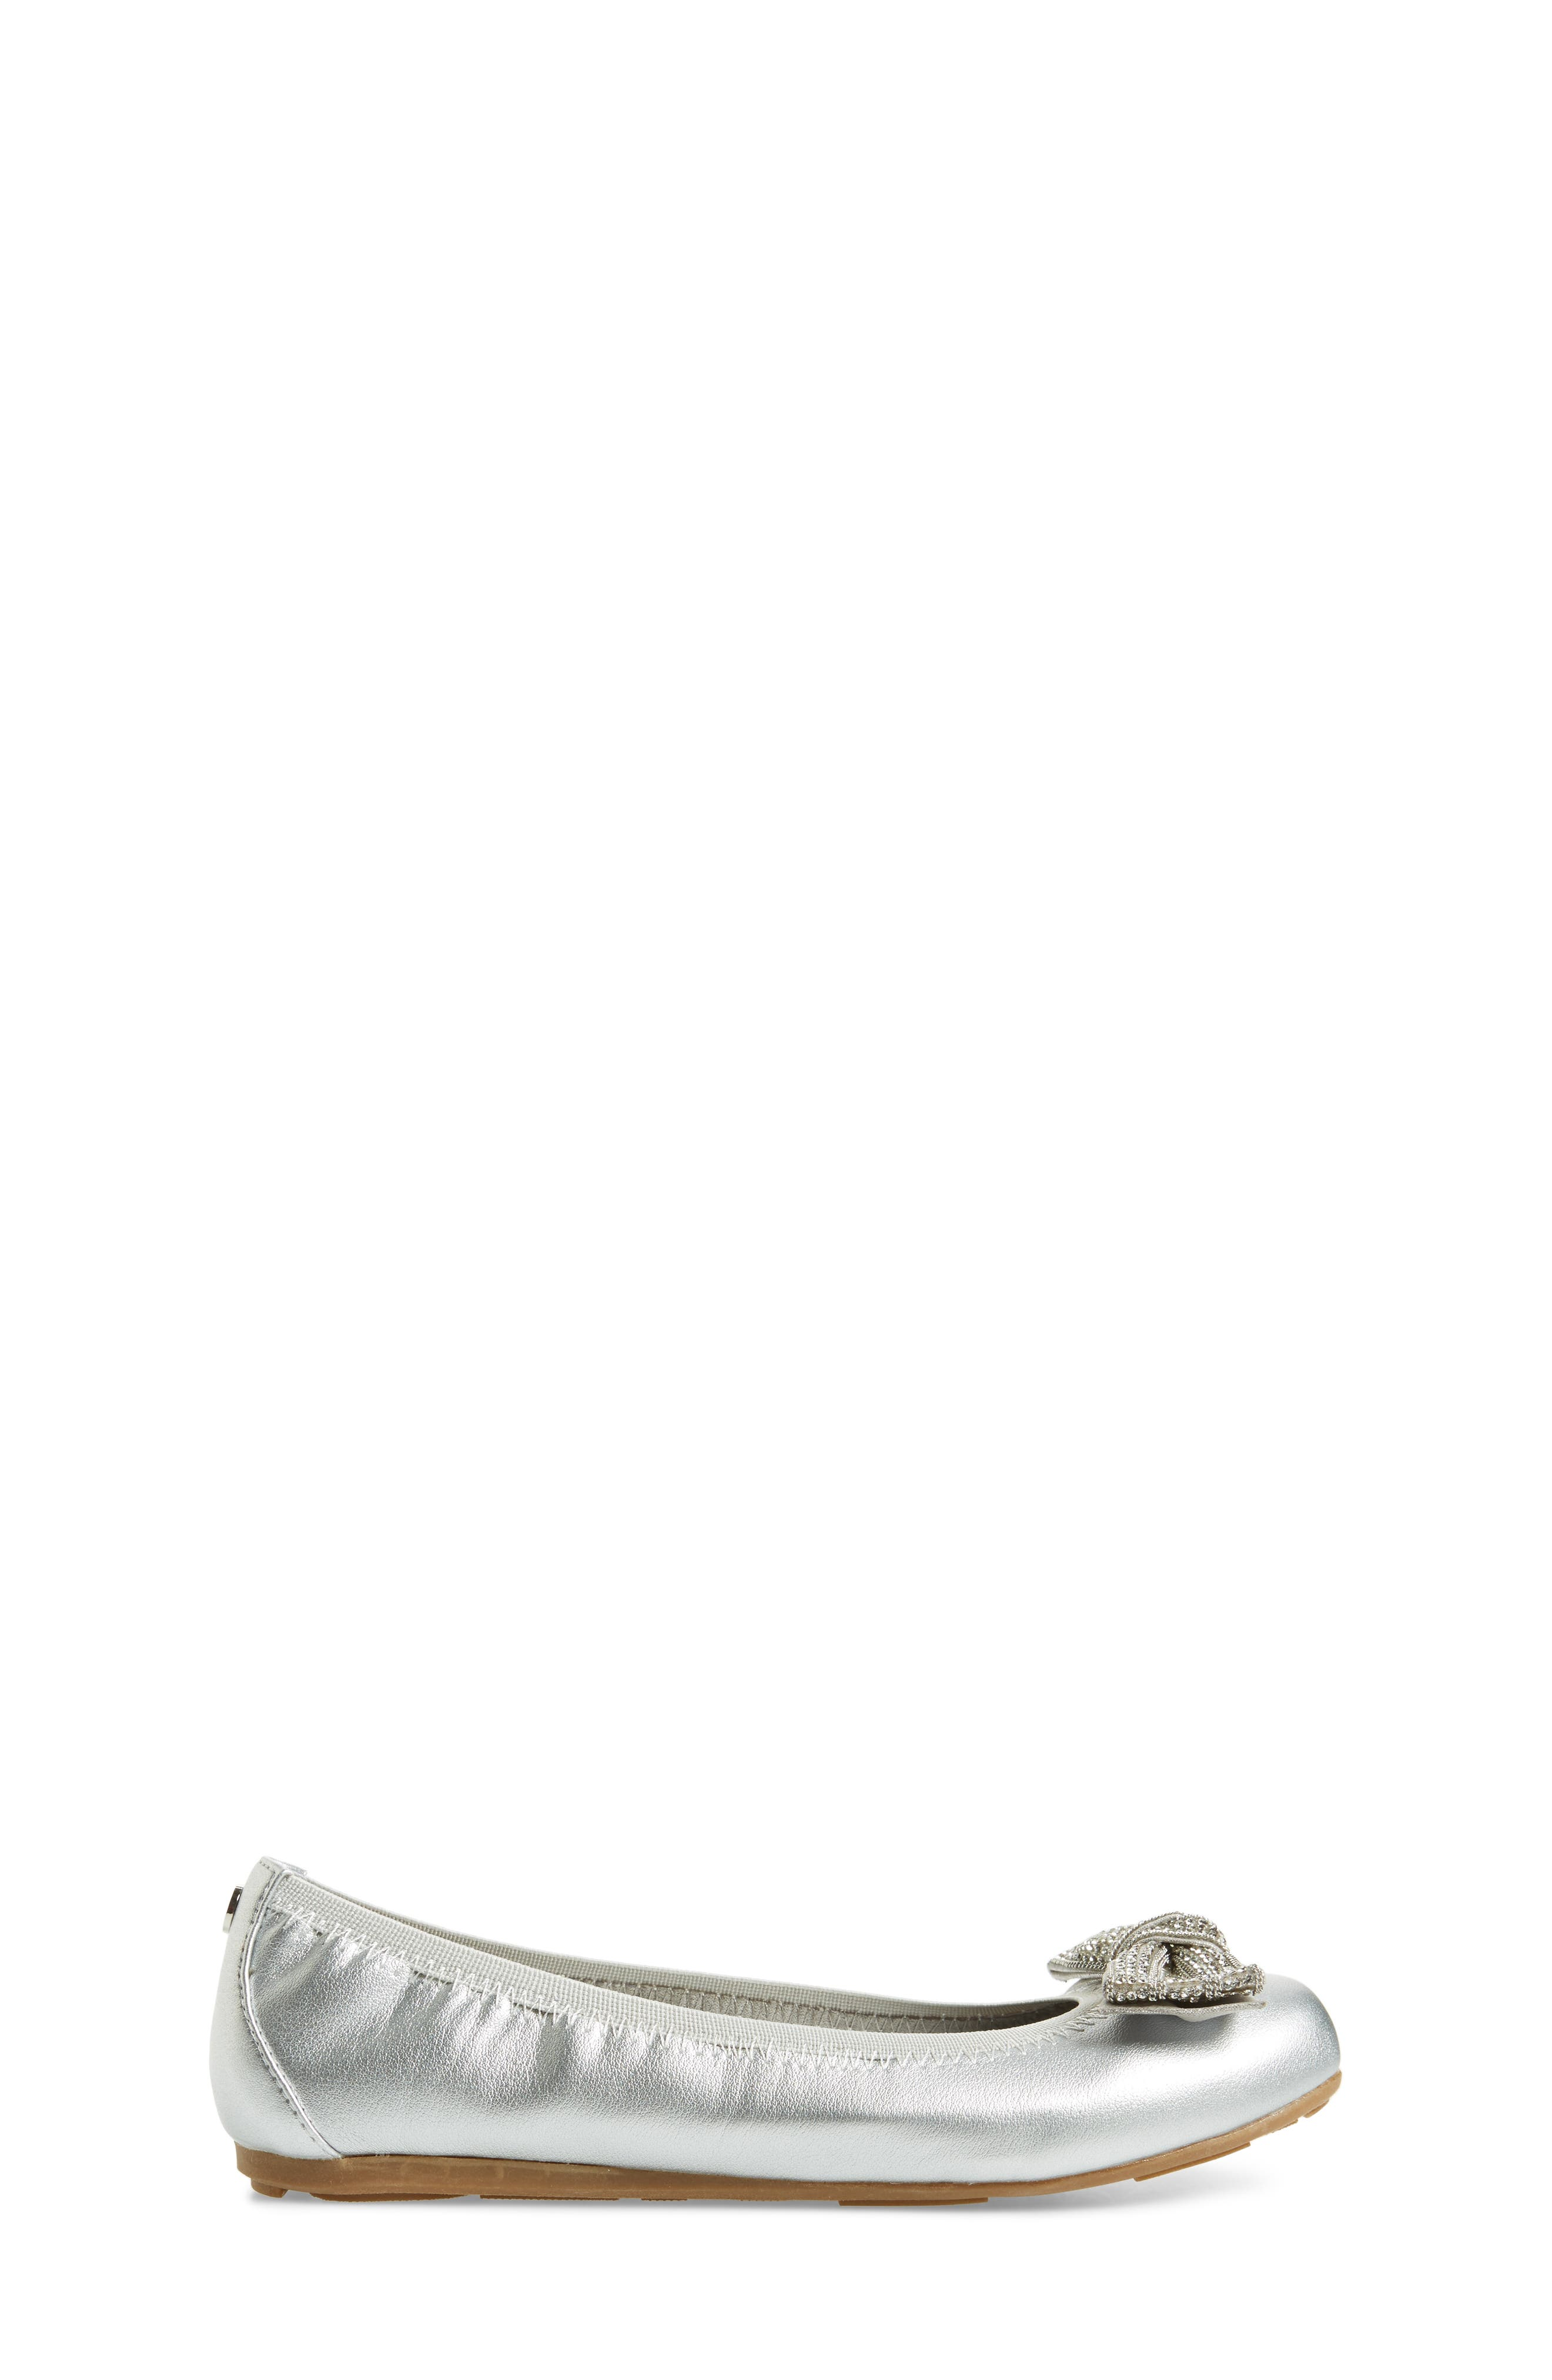 Fannie Embellished Bow Ballet Flat,                             Alternate thumbnail 3, color,                             Silver